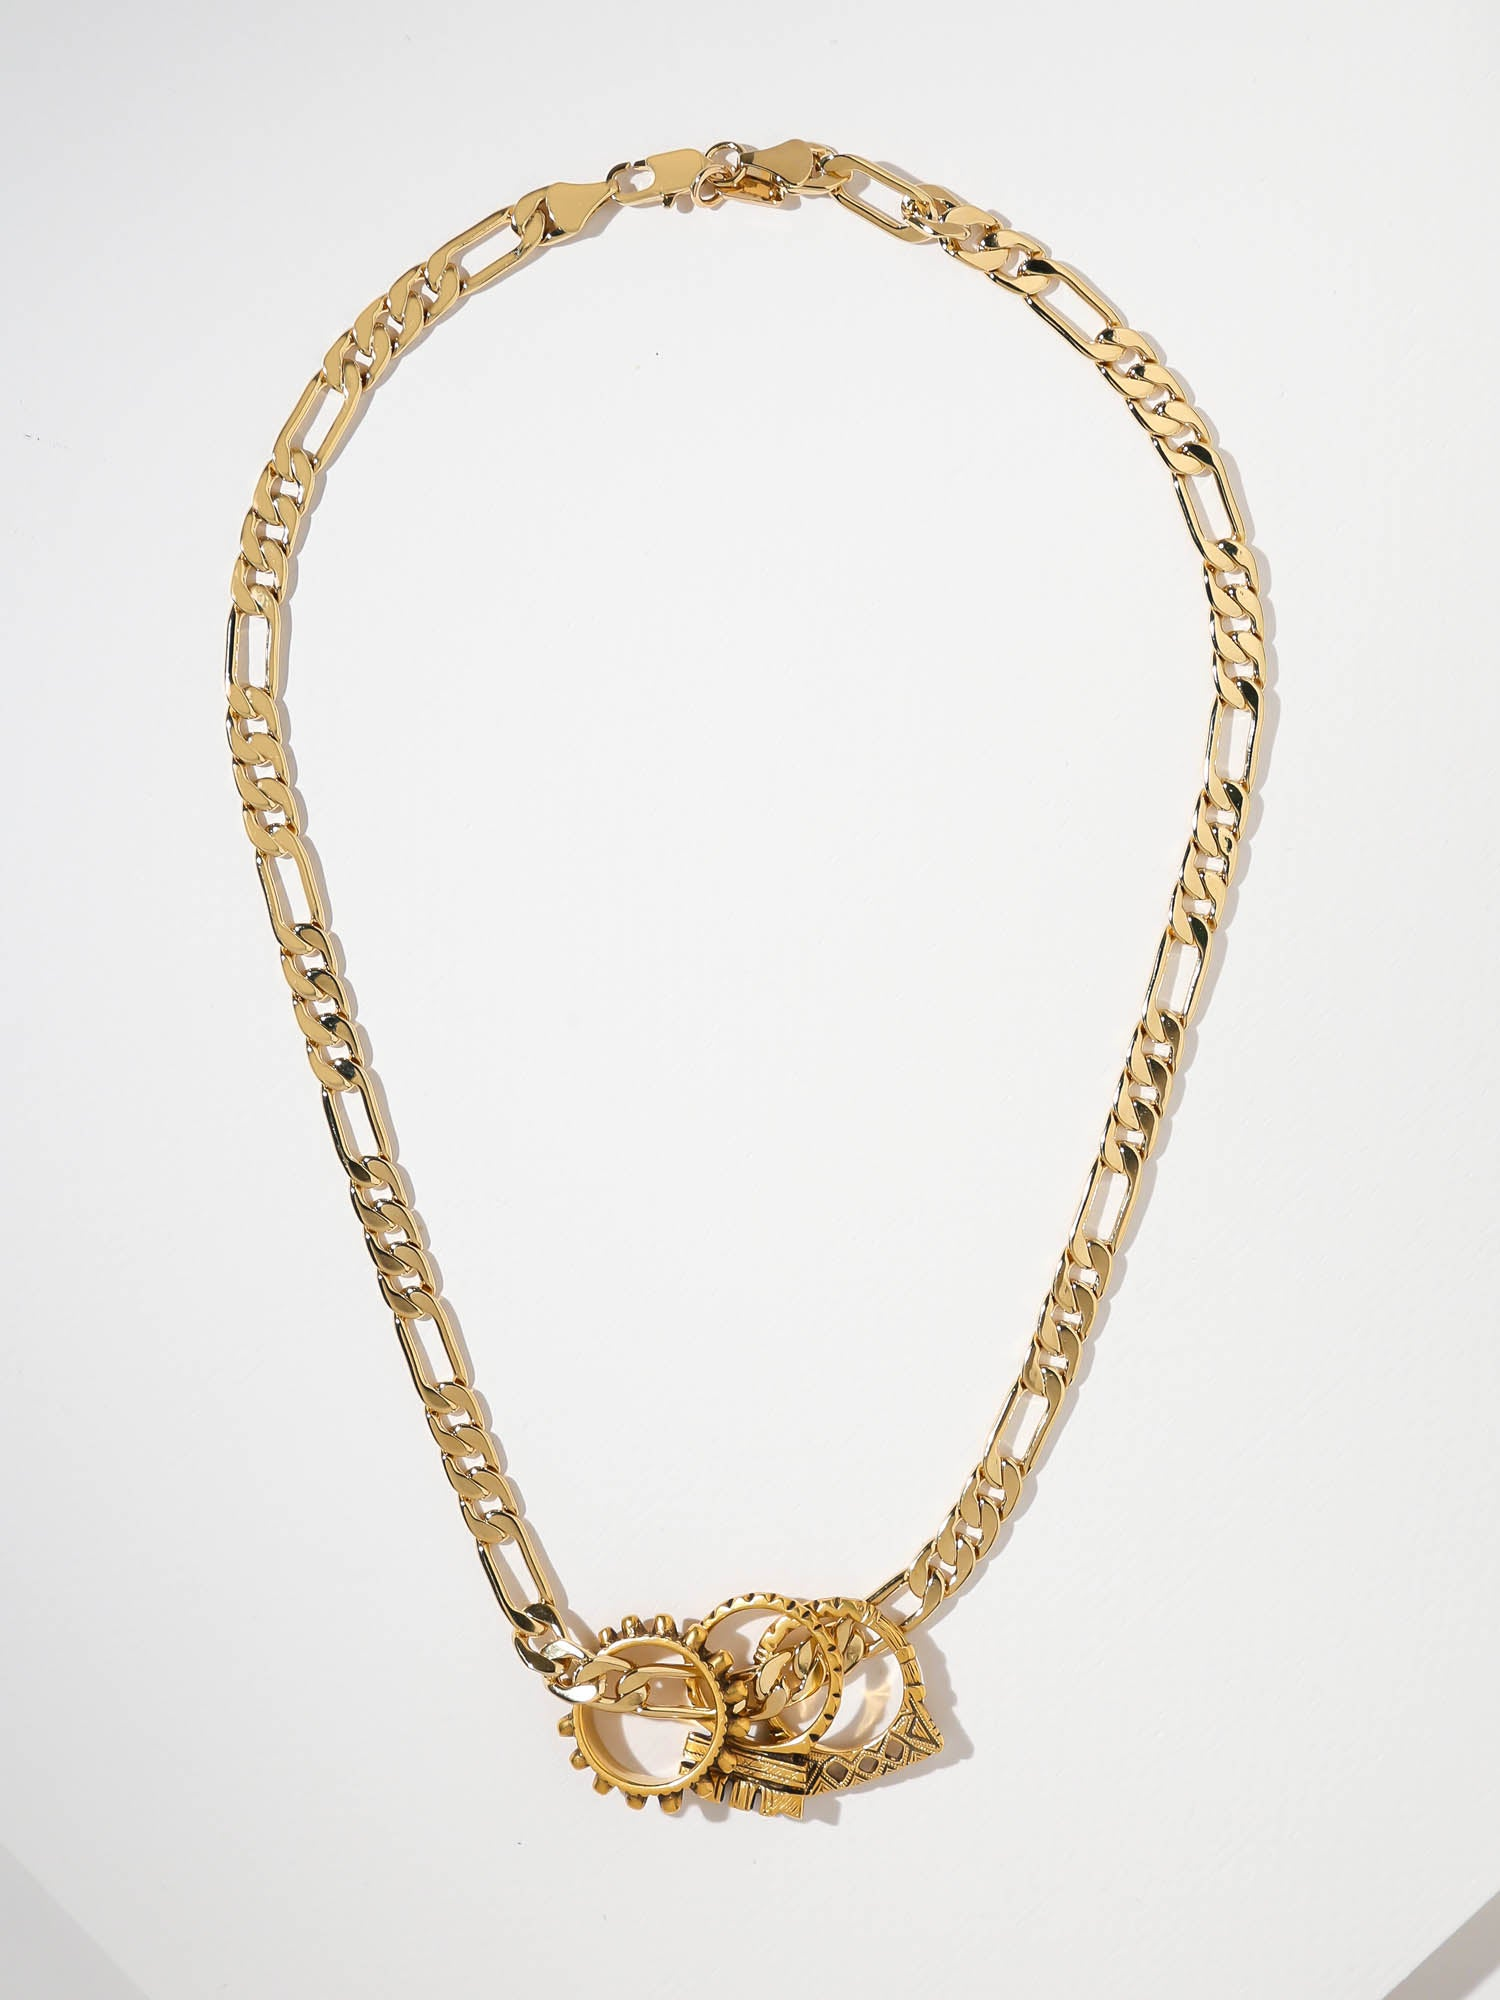 The Tri-Ring Necklace